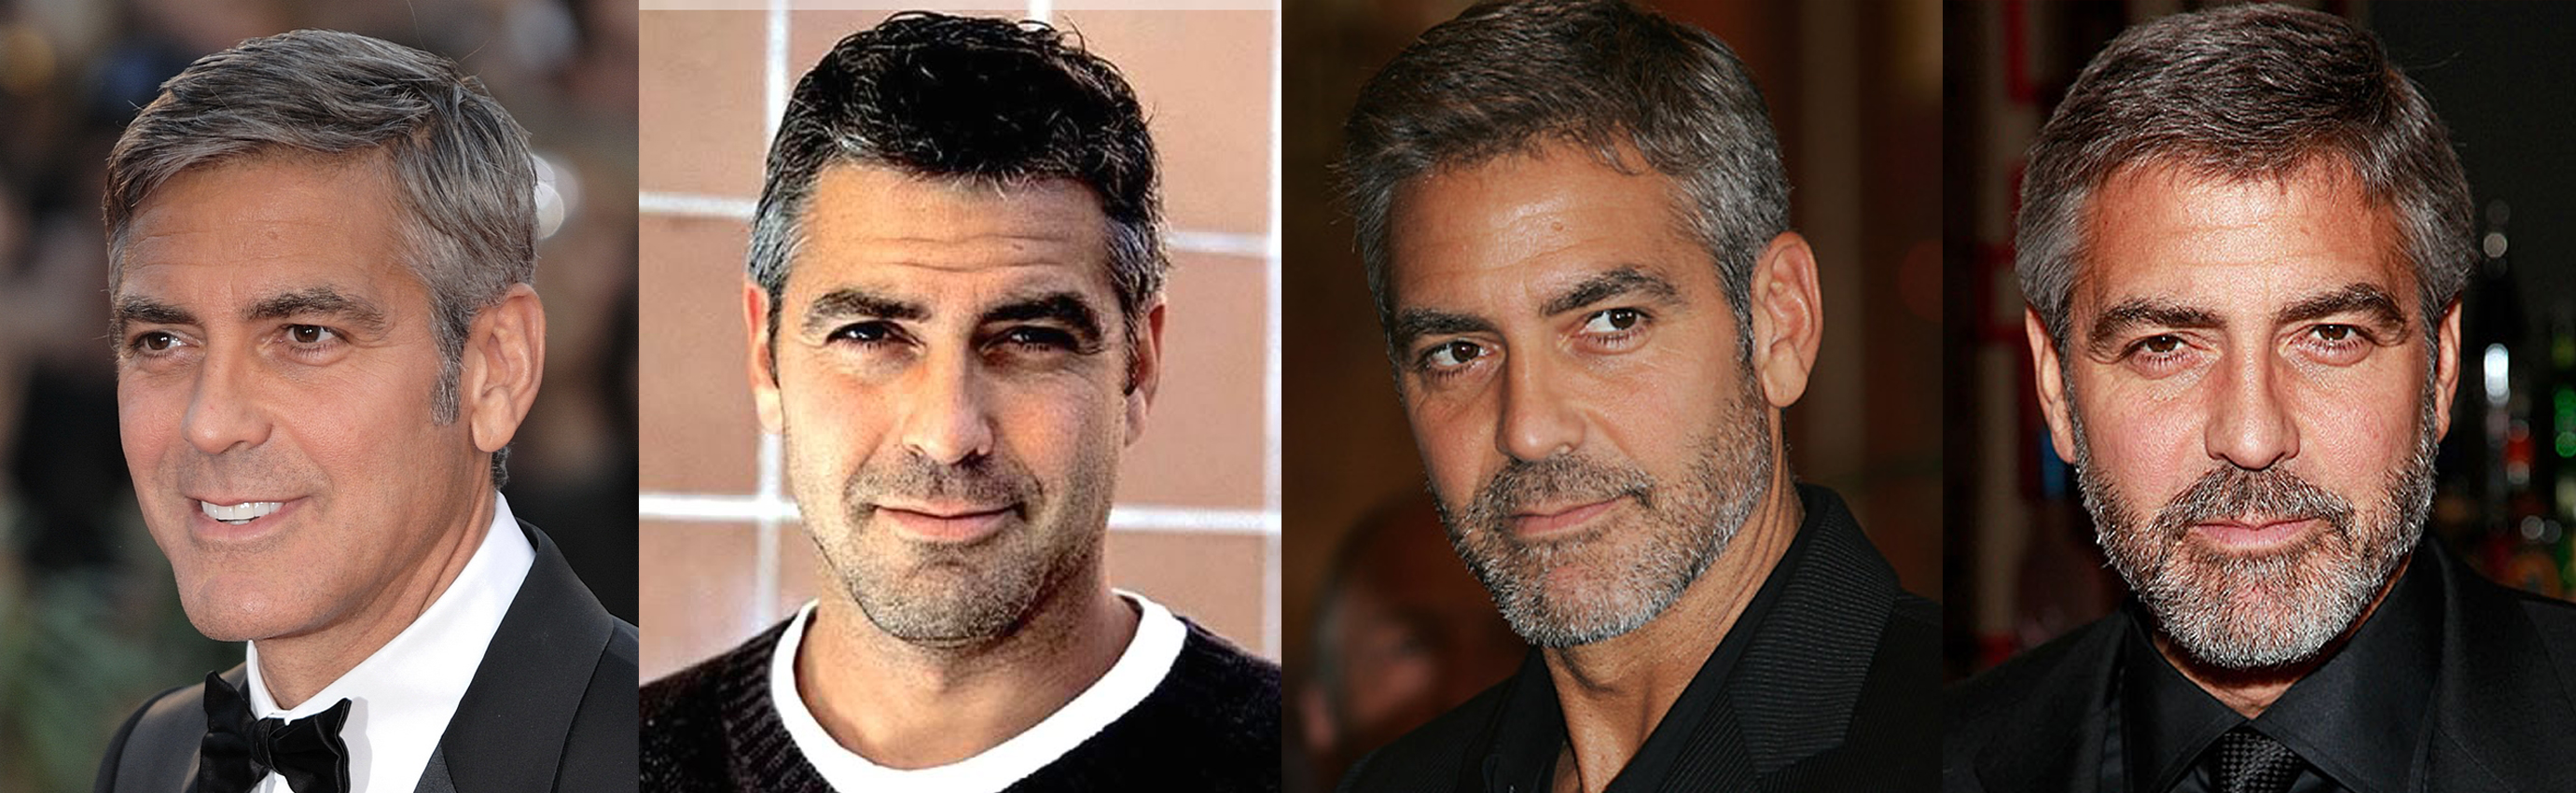 George Clooney with increasing facial hair